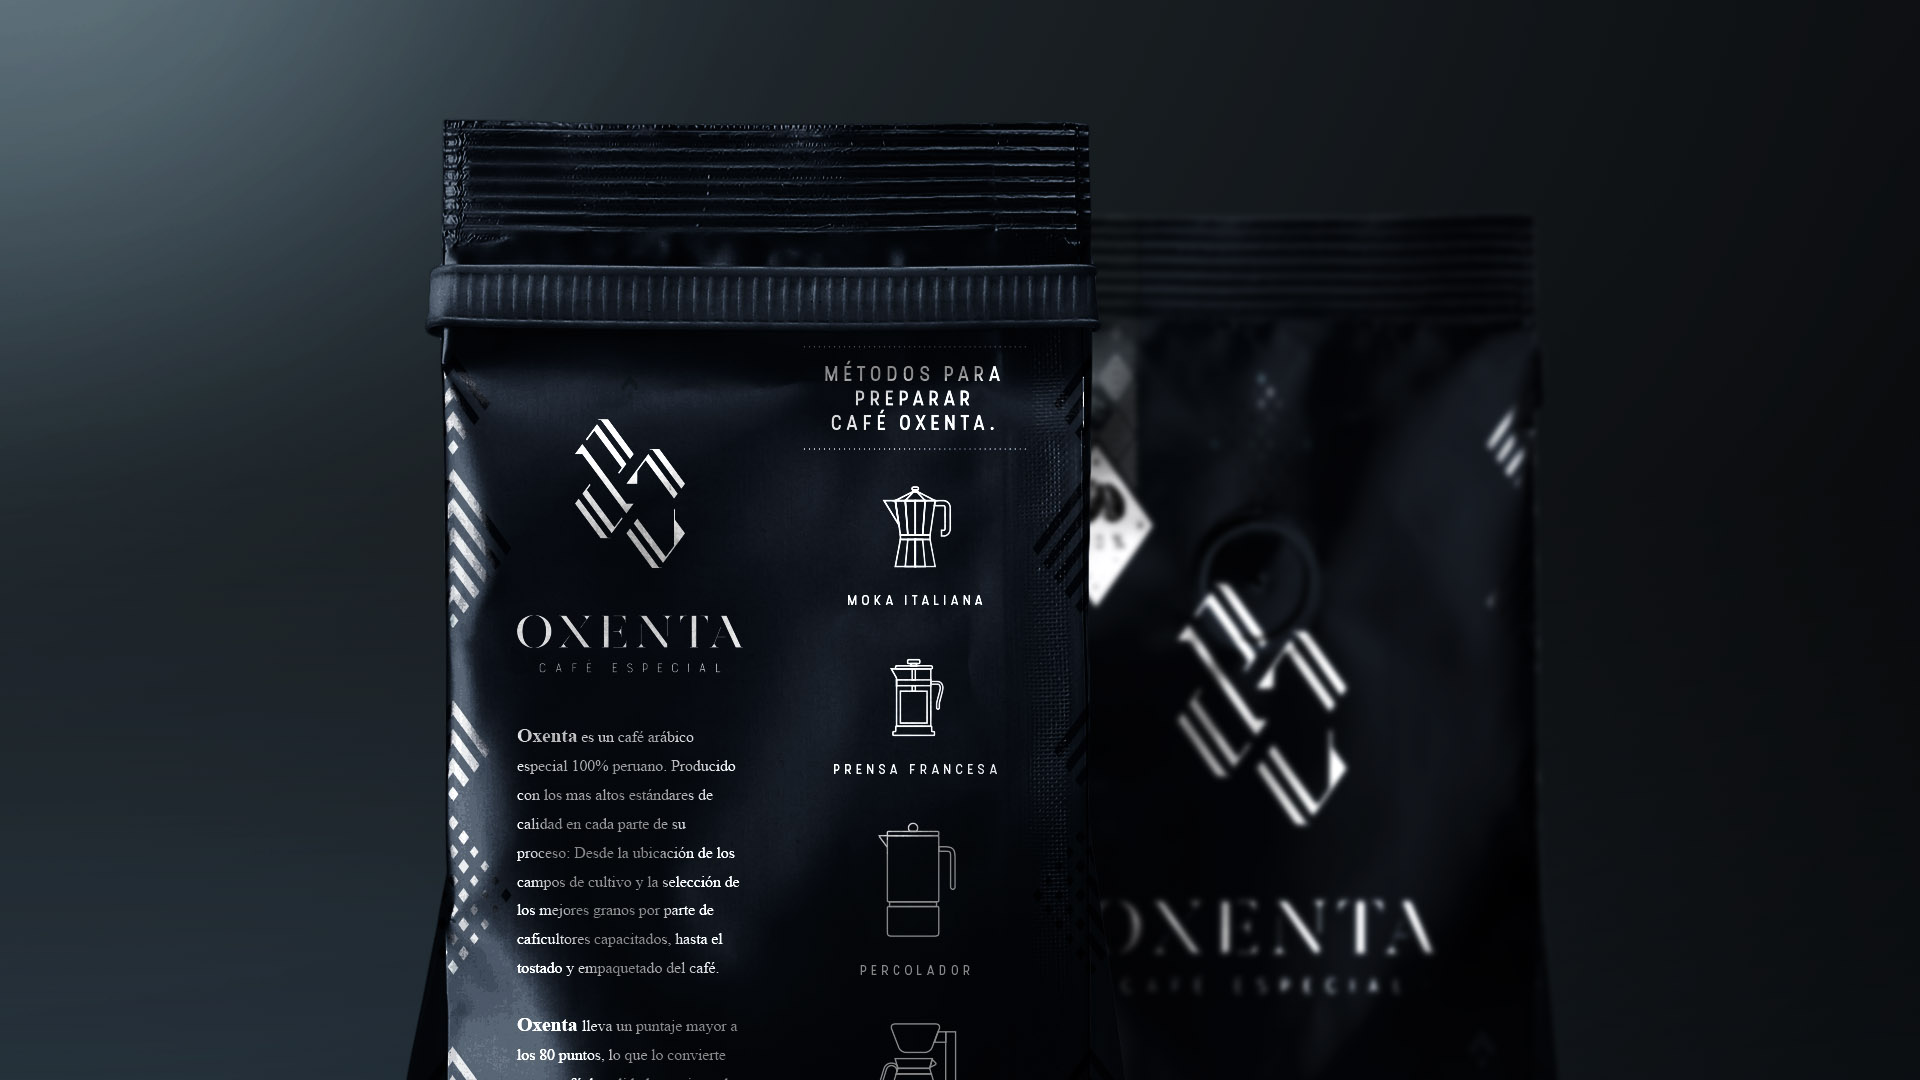 oxenta coffee bag6.jpg